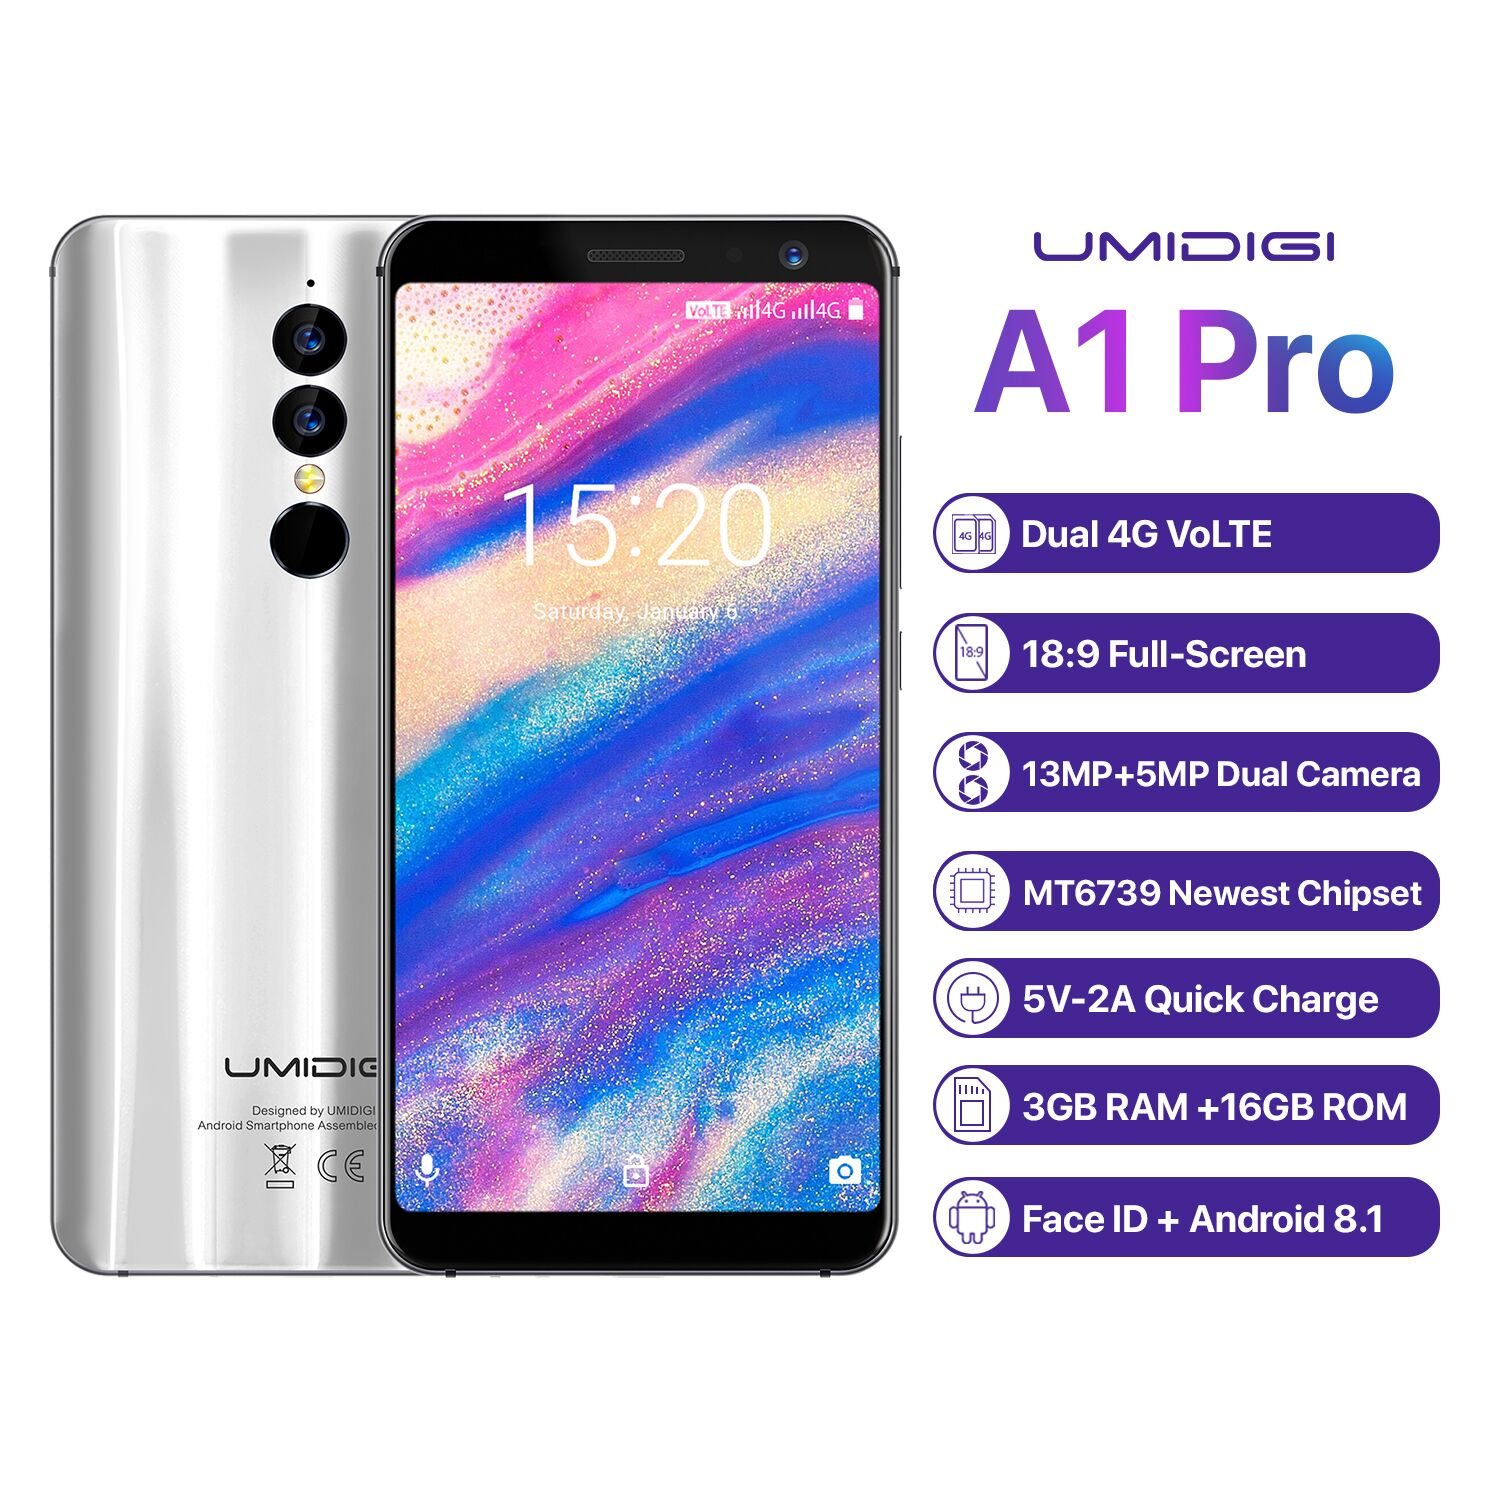 Wholesale UMIDIGI A1 Pro 4G Smartphone-Android 8.1, 5.5 Inch, Face Unlock, 3150mAh, 3GB RAM, MTK6739 (Silver)